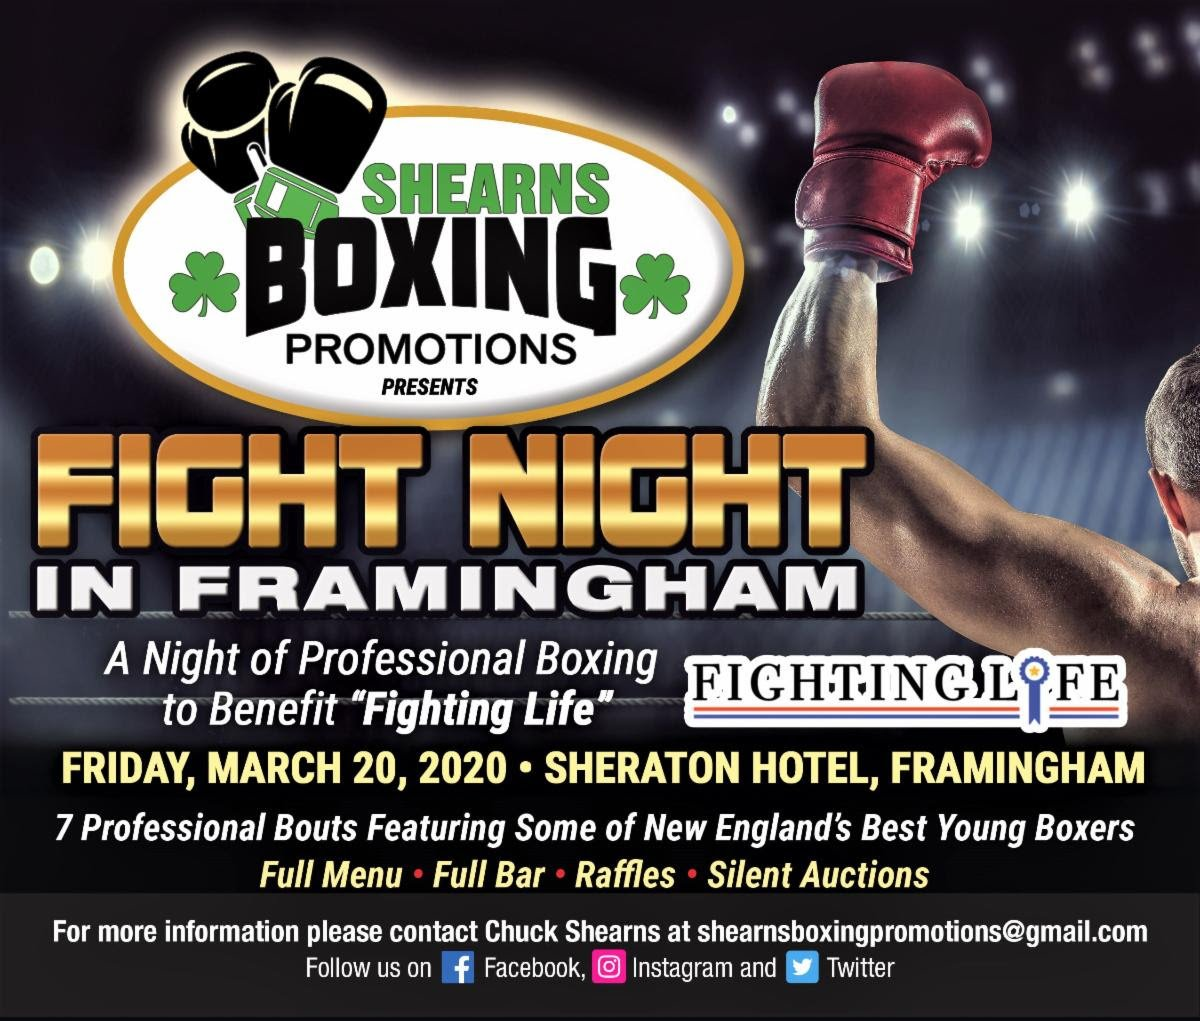 """The son of Sandman, Jarel """"Sandman"""" Pemberton, returns to the ring for the first time in nearly two years on the """"Fight Night In Framingham"""" card, presented by Shearns Boxing Promotions (SBP), March 20, at Sheraton Framingham Hotel in Framingham, Massachusetts."""